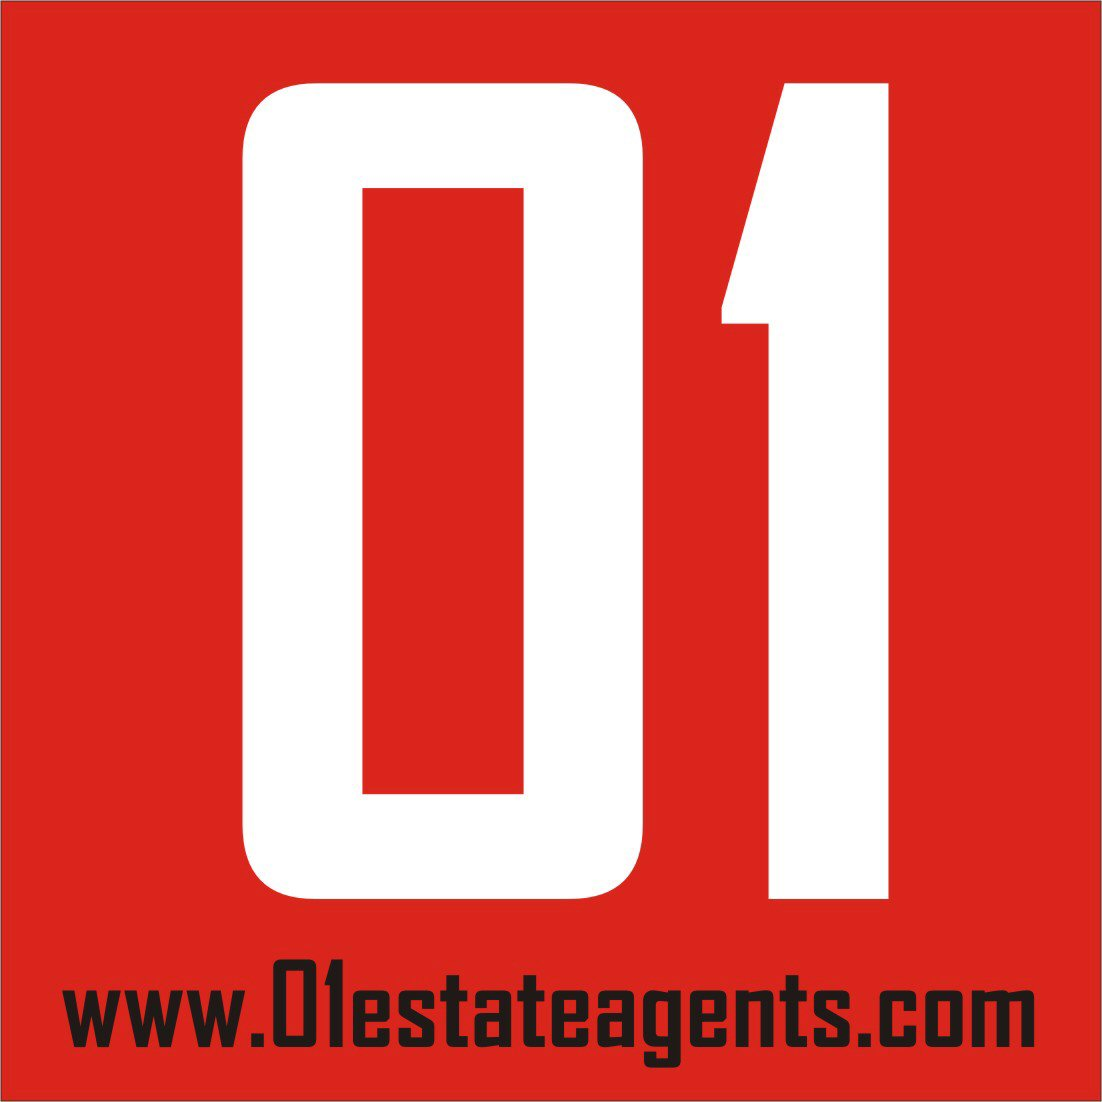 01 Estate Agents